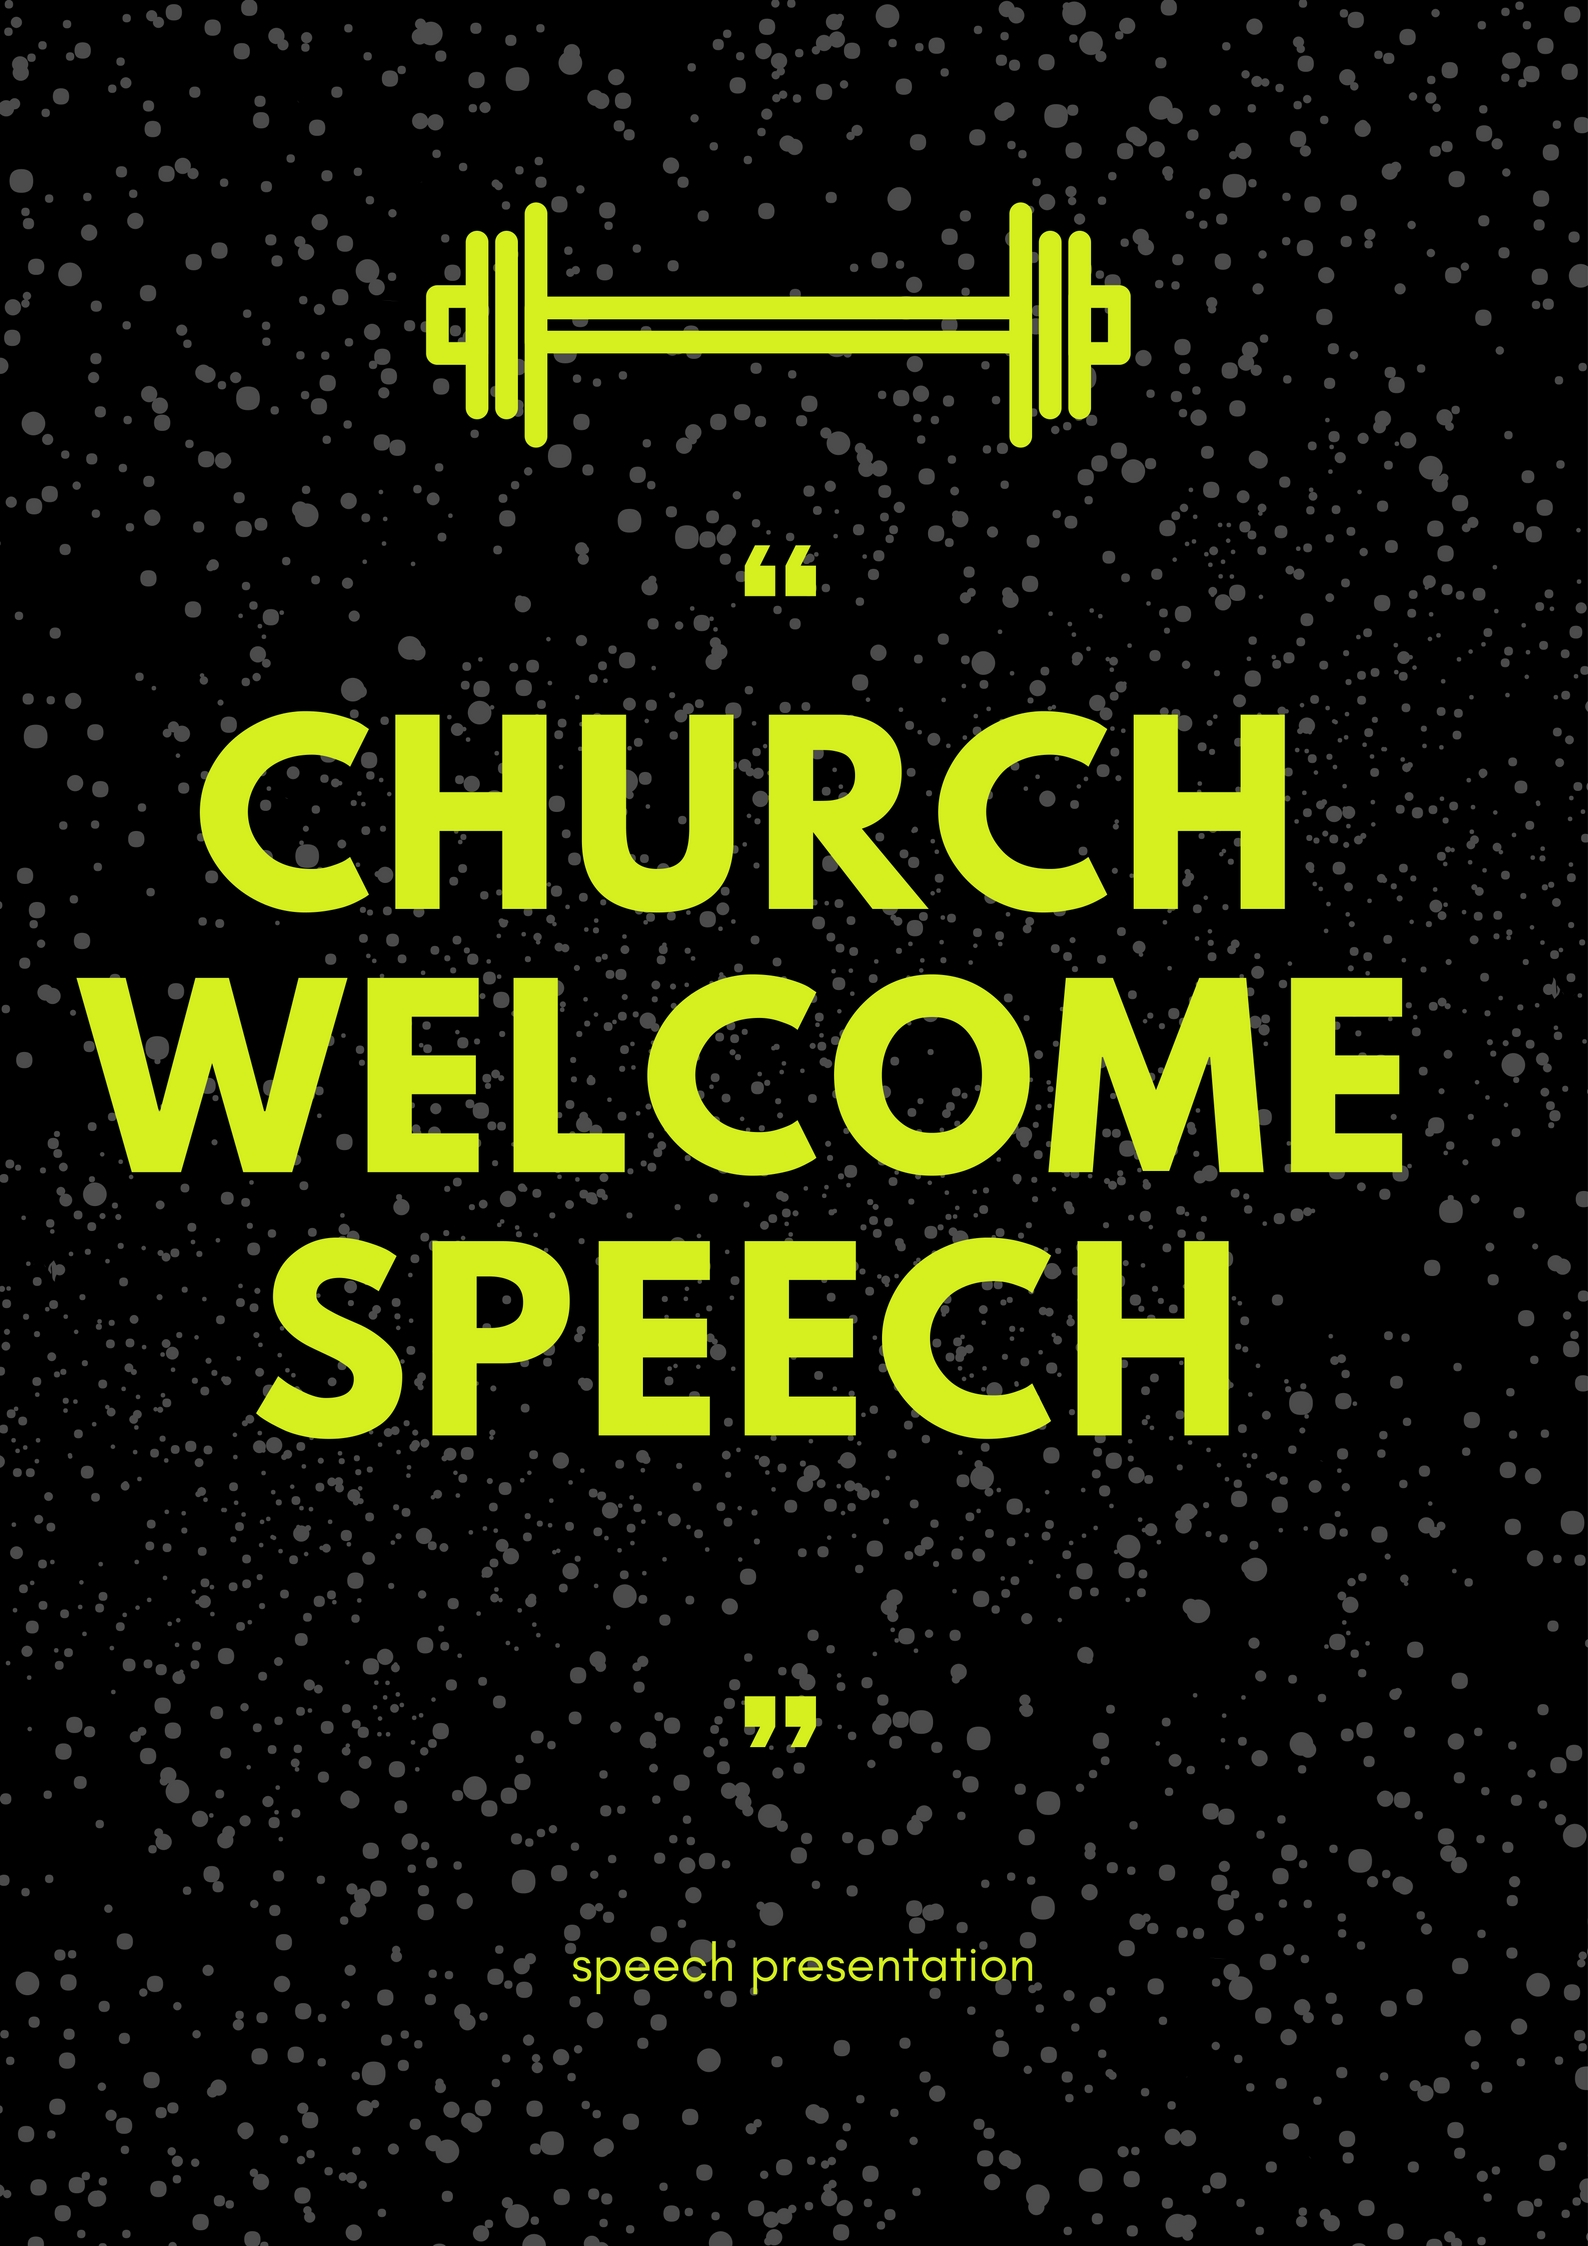 Church welcome speech sample church welcome speech sample m4hsunfo